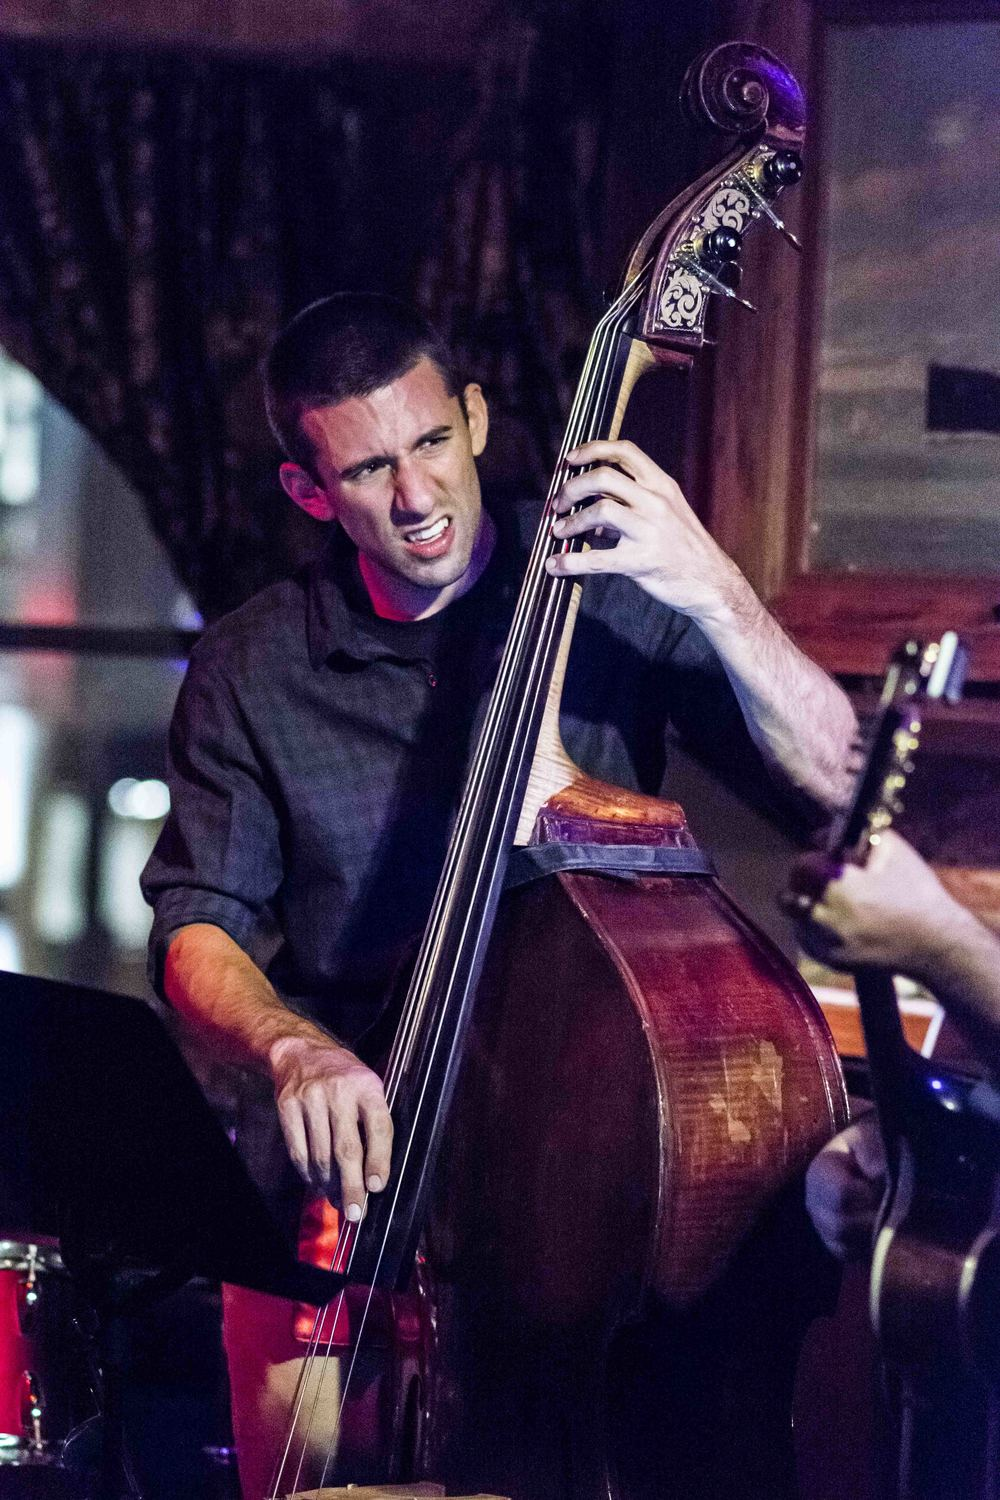 Ed Hrybyk on bassat the DC Jazz Jam - Sunday September 20, 2015